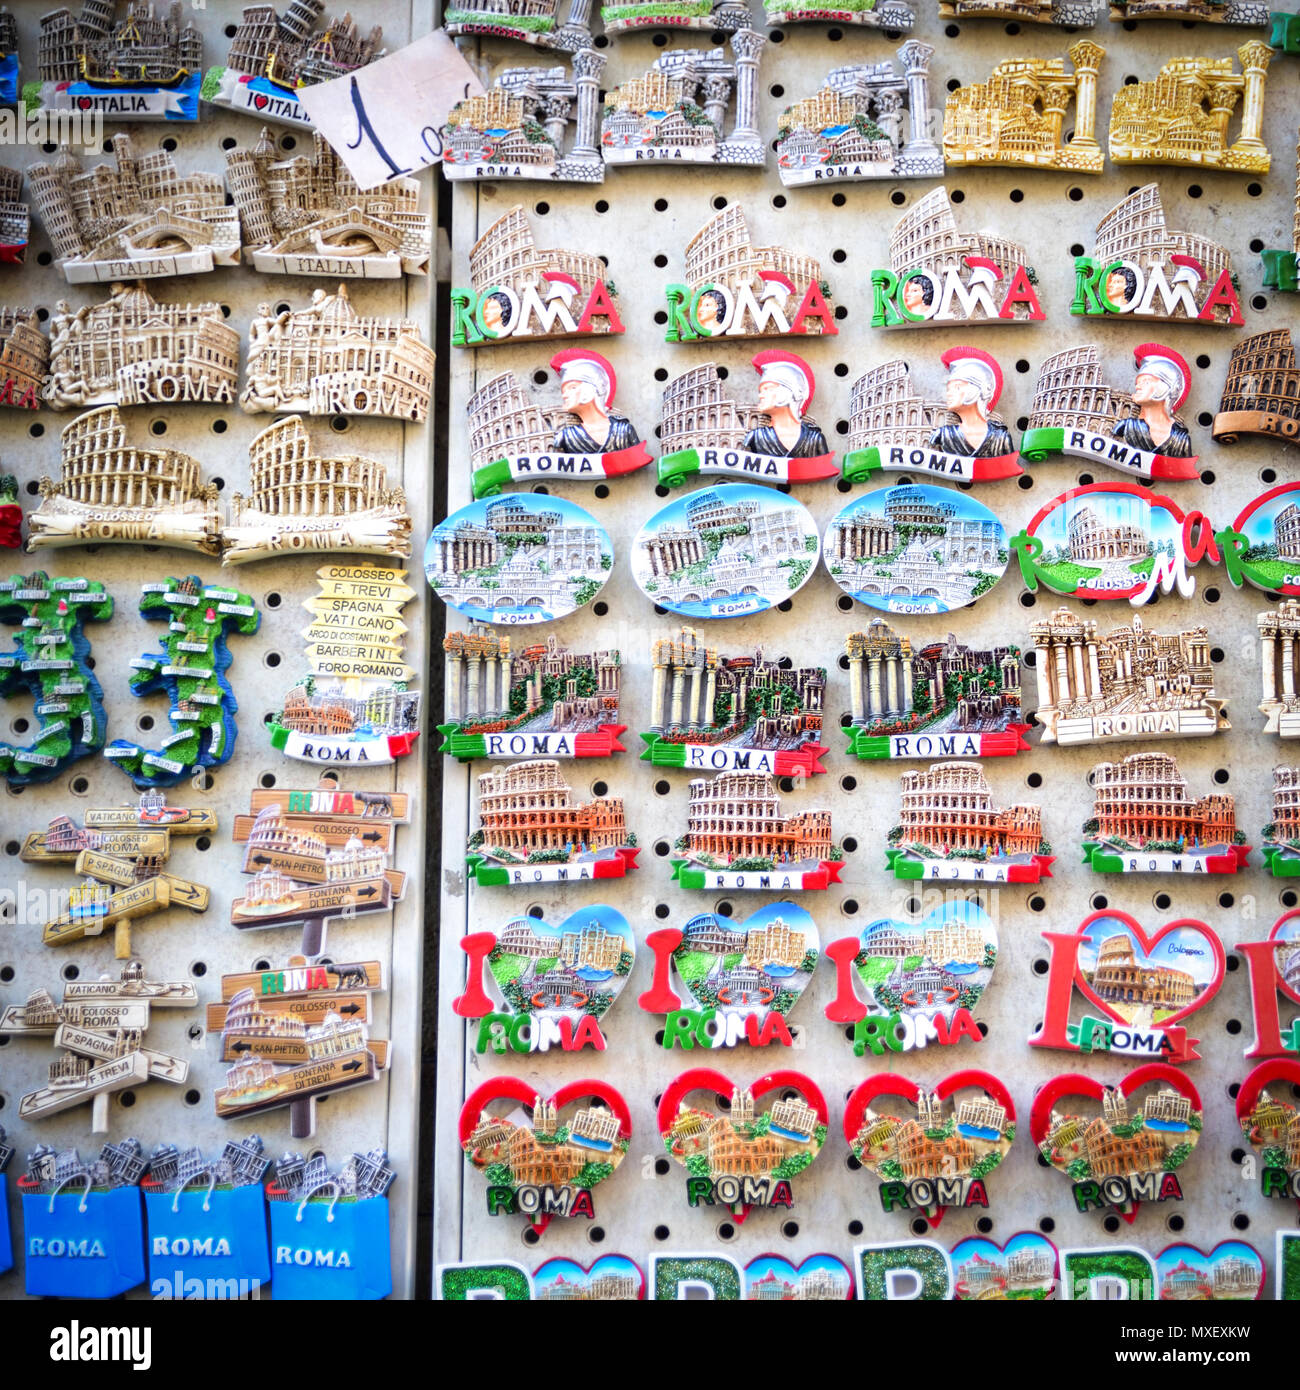 souvenirs for tourists in Rome, Italy - Stock Image